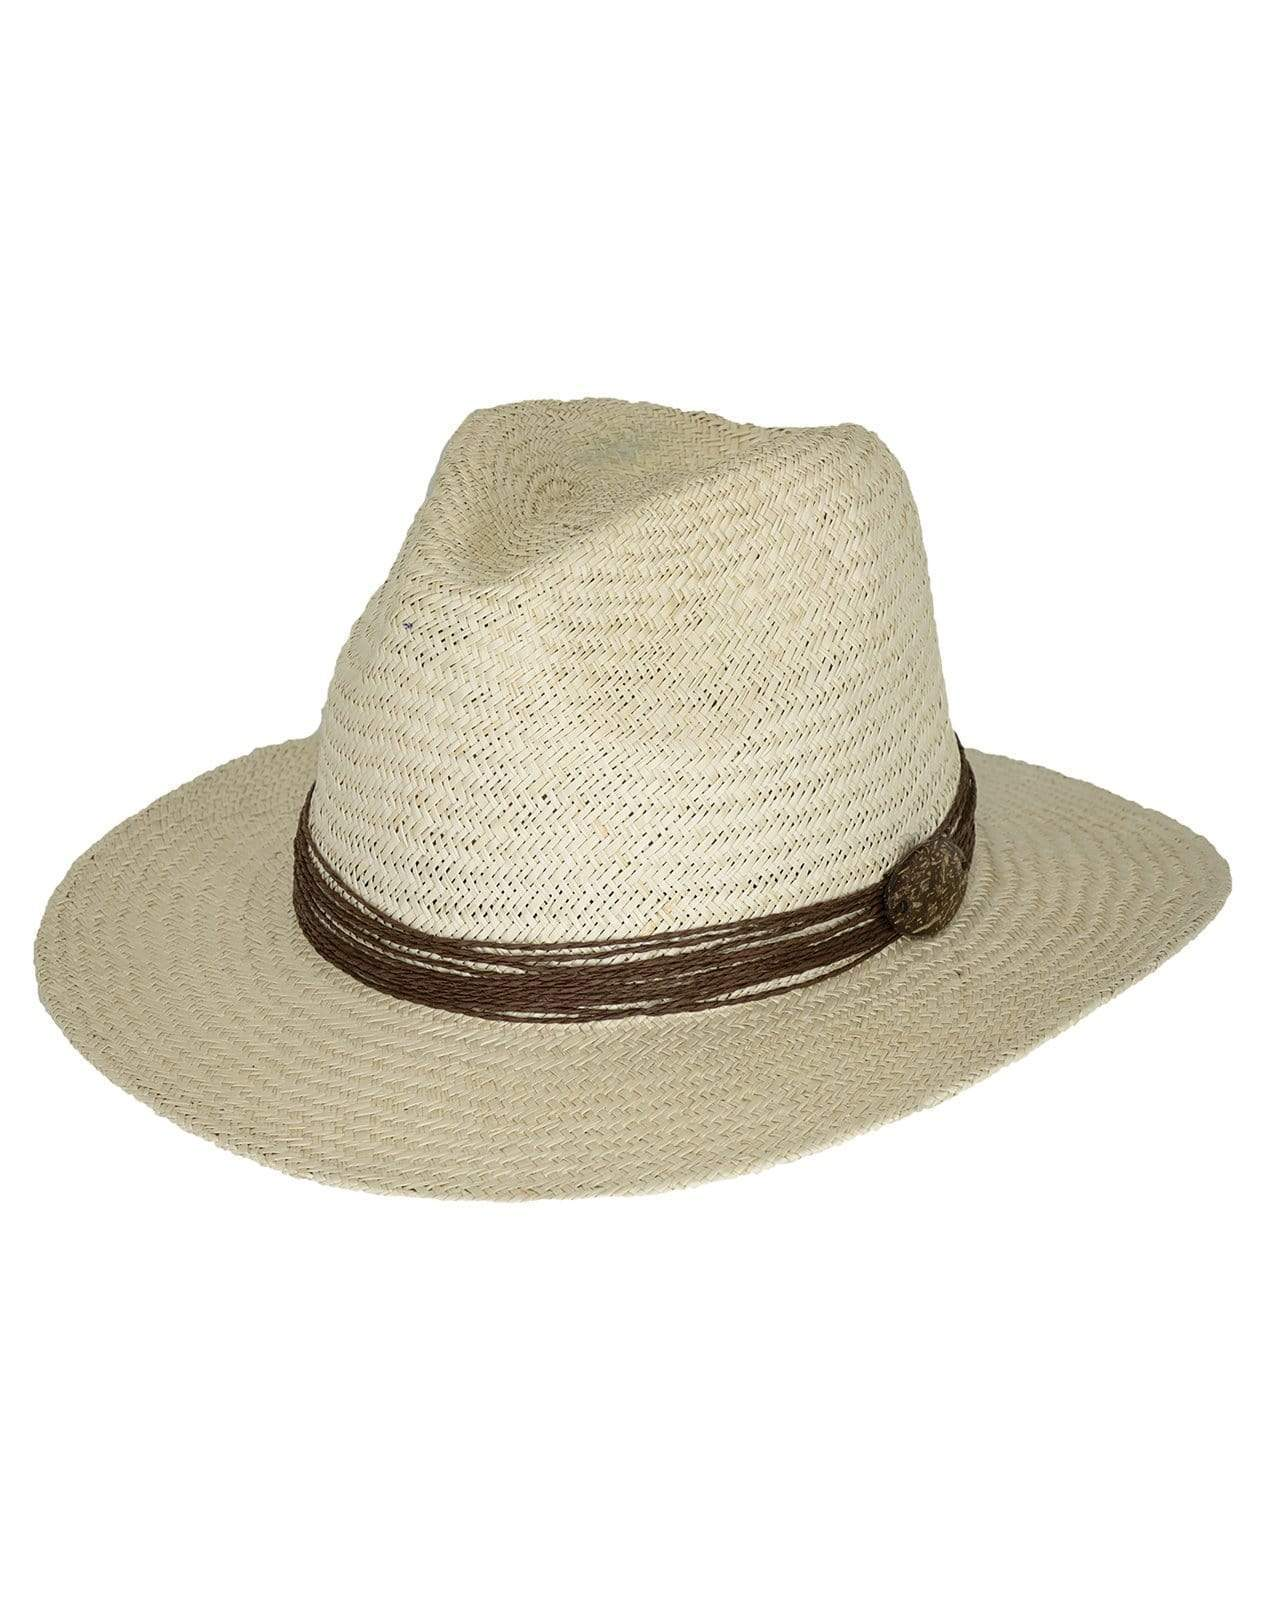 Outback Trading Company The West Ender Straw Hat IVORY / SM / MD 15135-IVO-S/M